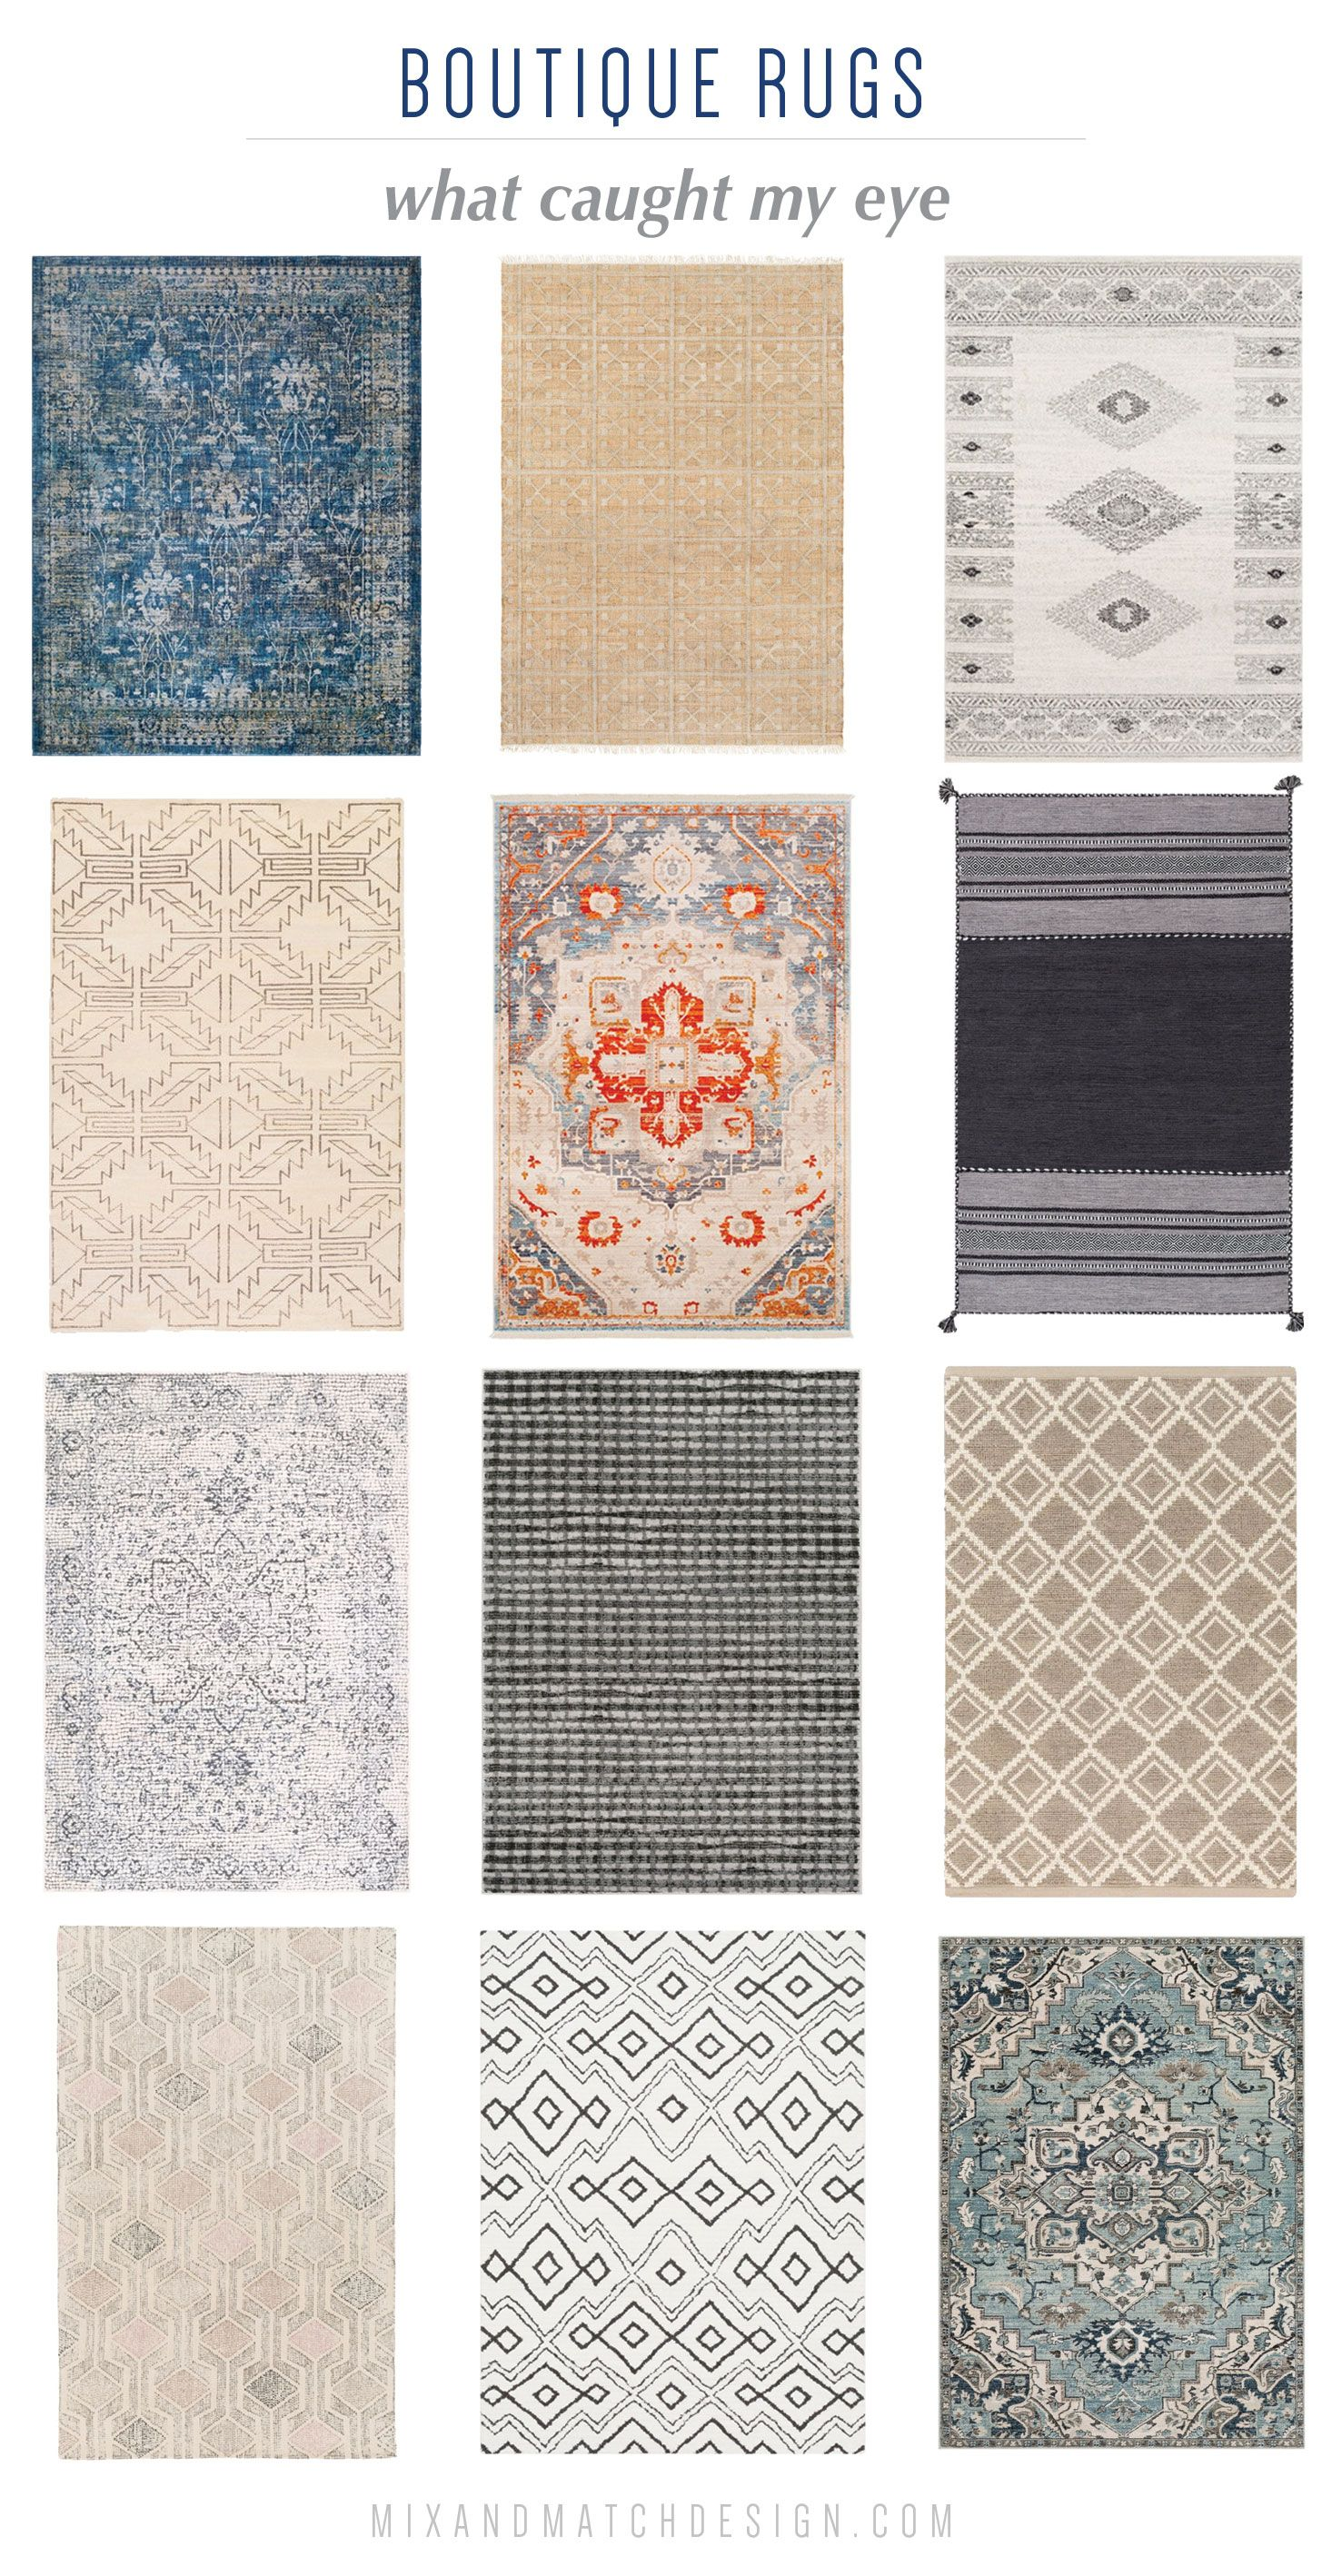 I Love A Good Rug It Can Be The Finishing Touch On A Room On The Blog I M Sharing A Roundup Of Favorites From Bouti Cool Rugs Baby Nursery Inspiration